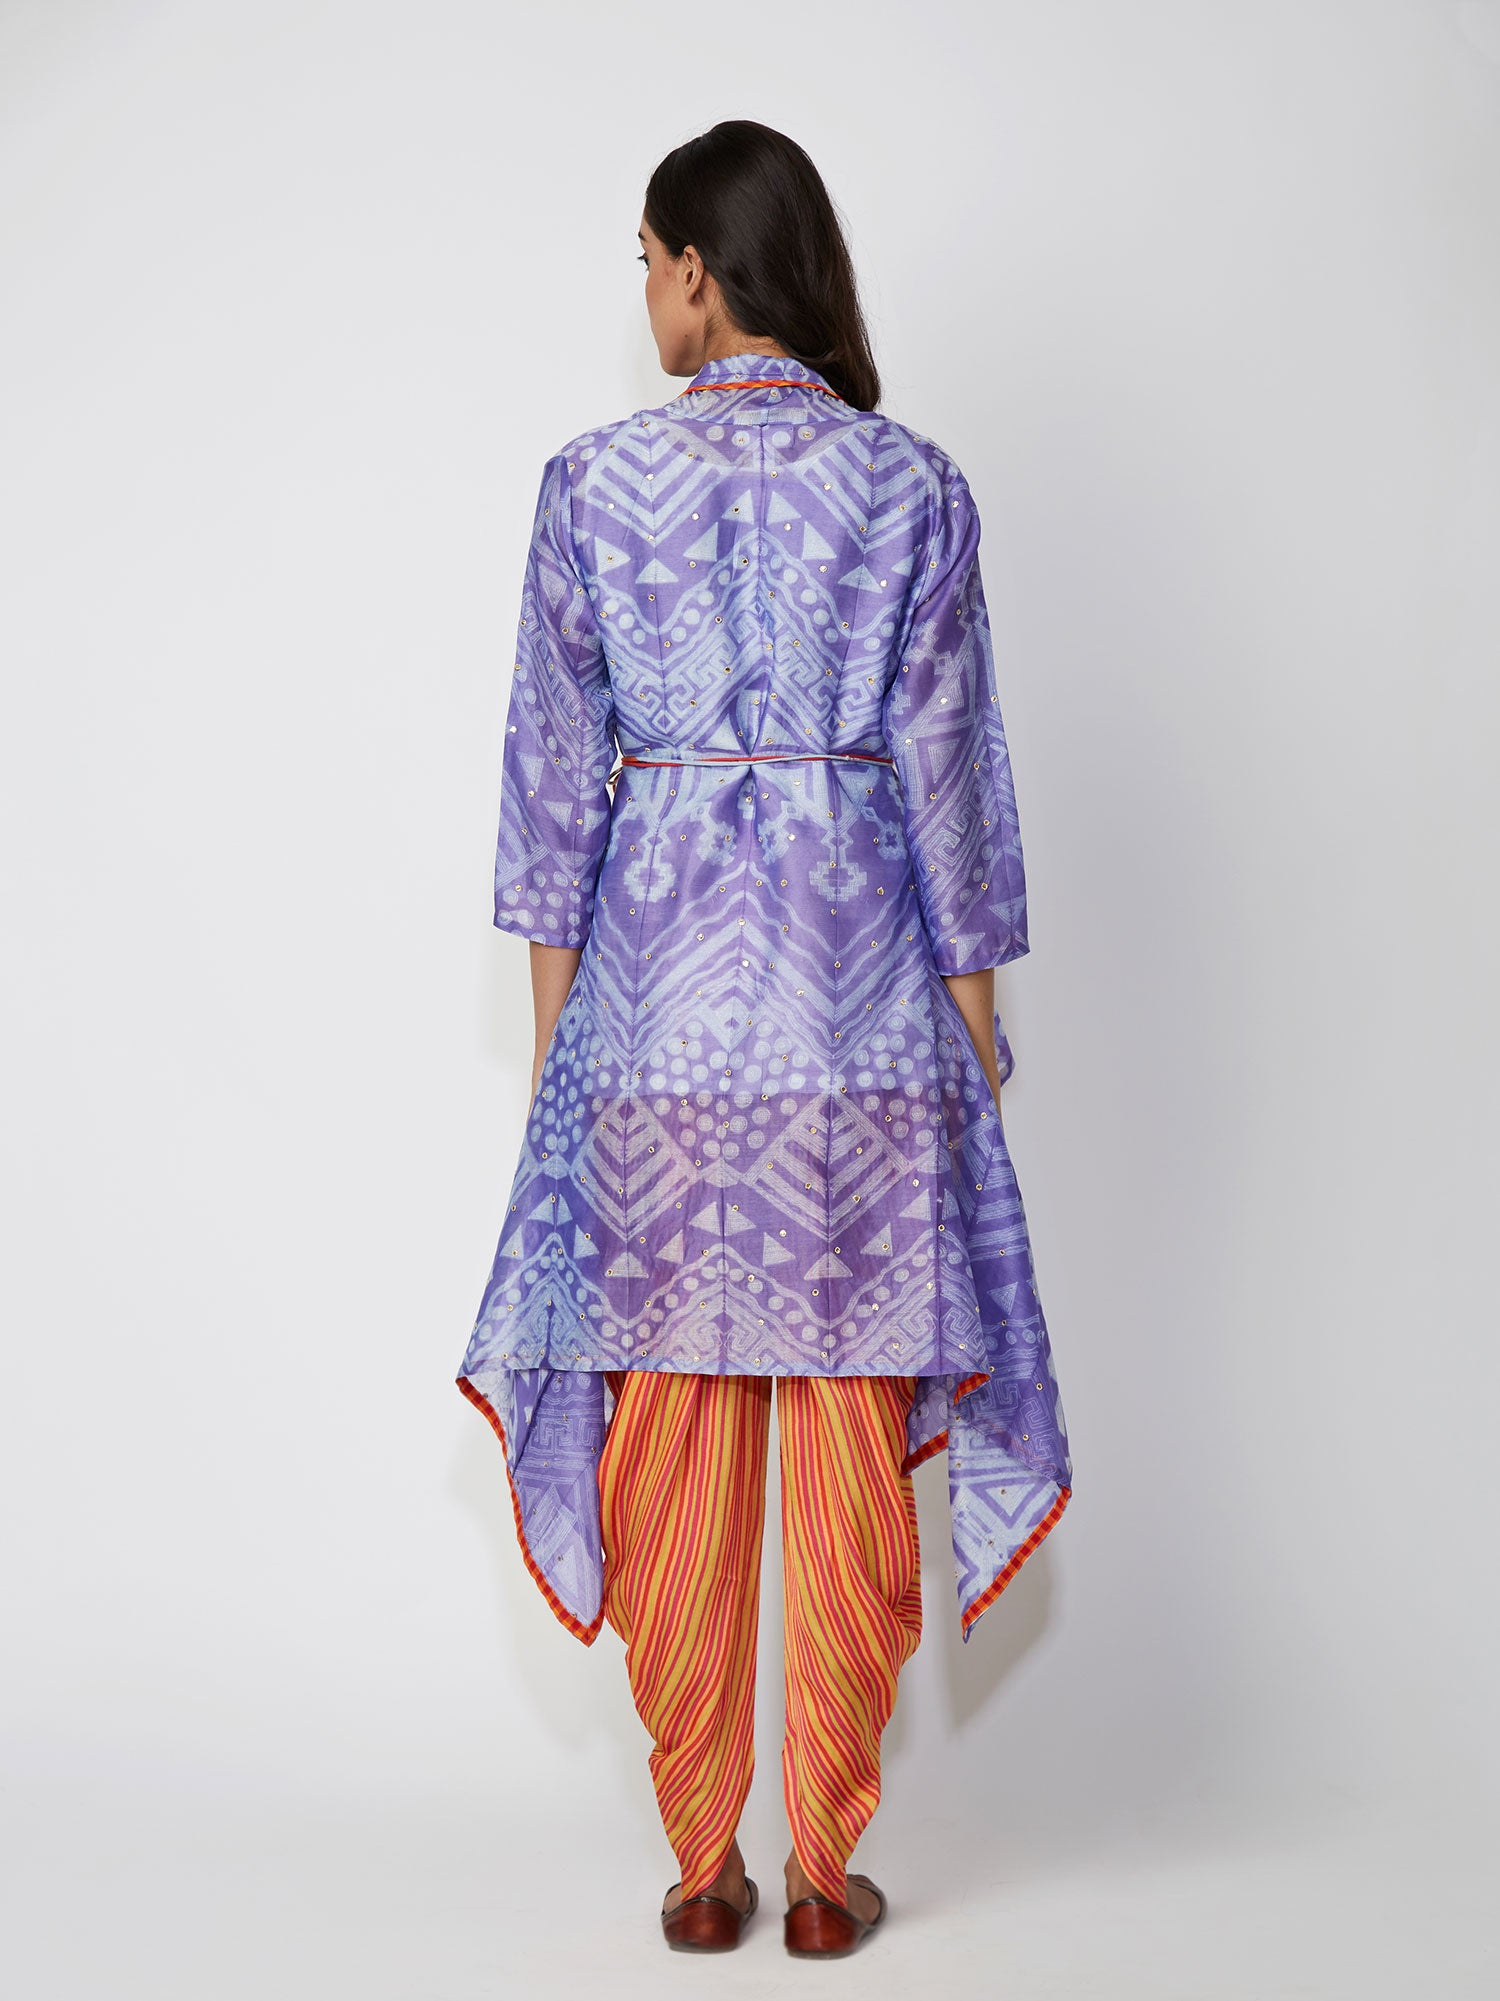 Violet Tribal Shibori Chanderi Jacket And Dhoti Pants